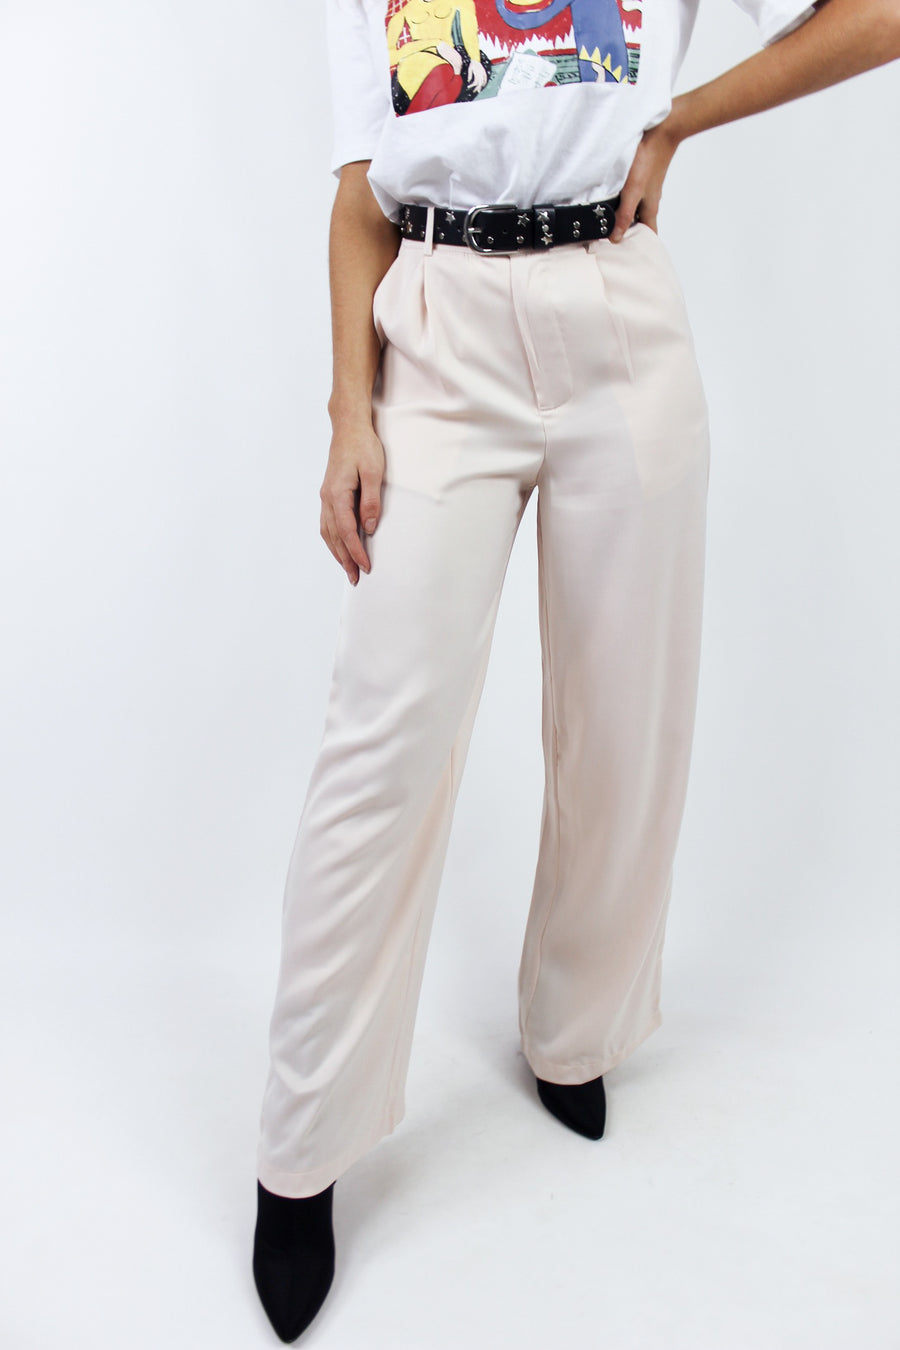 LADY BOSS SILKY PANTS / APRICOT - Halite Clothing